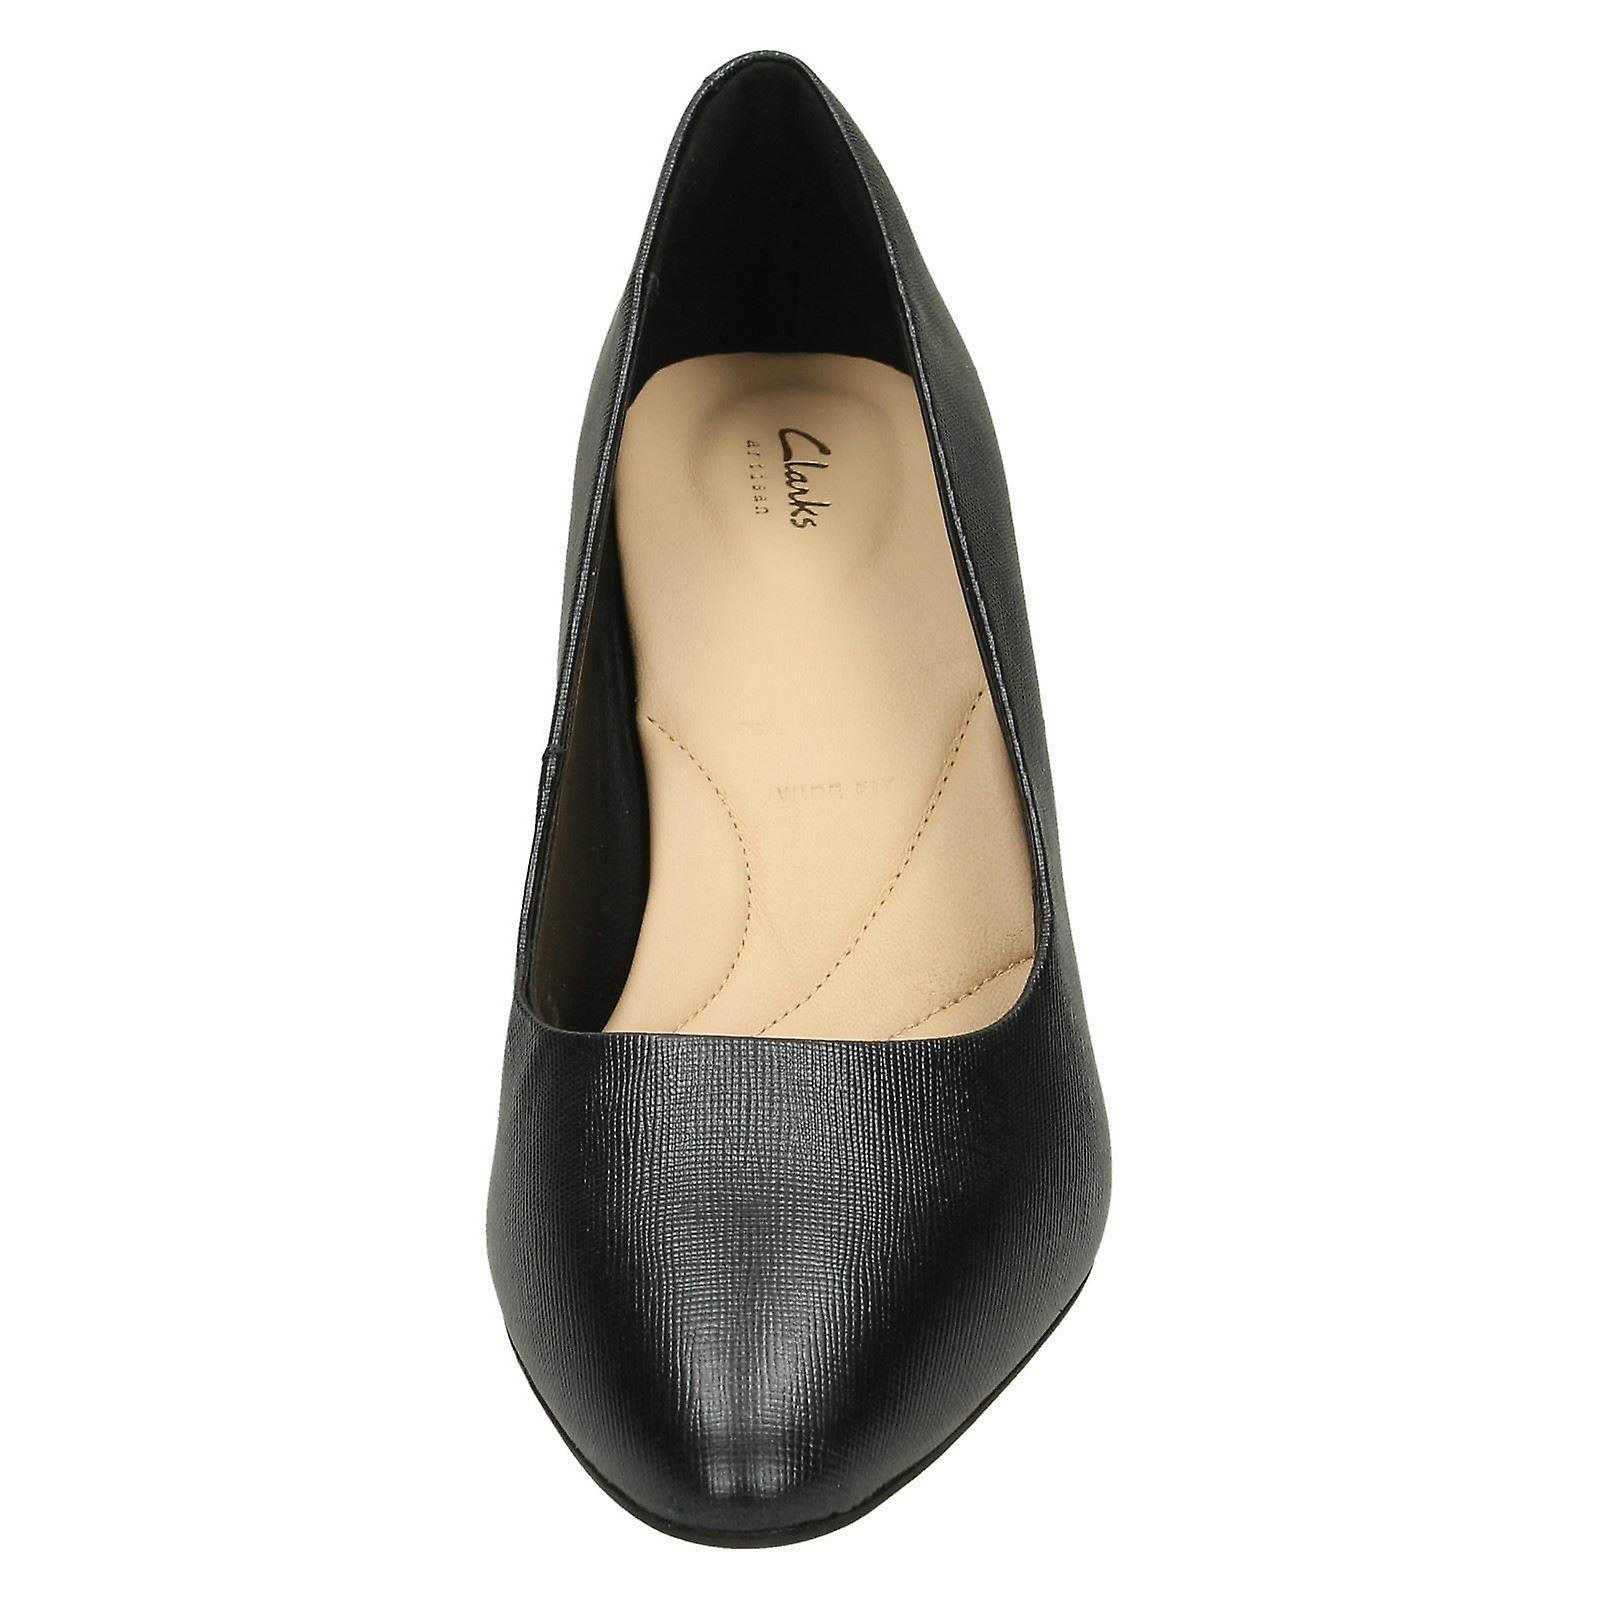 Textured Size Shoes UK Textured US Court Size Leather Clarks 4 Black Calla Size 5D 37 Ladies EU 7M 5 Rose vw0qxz